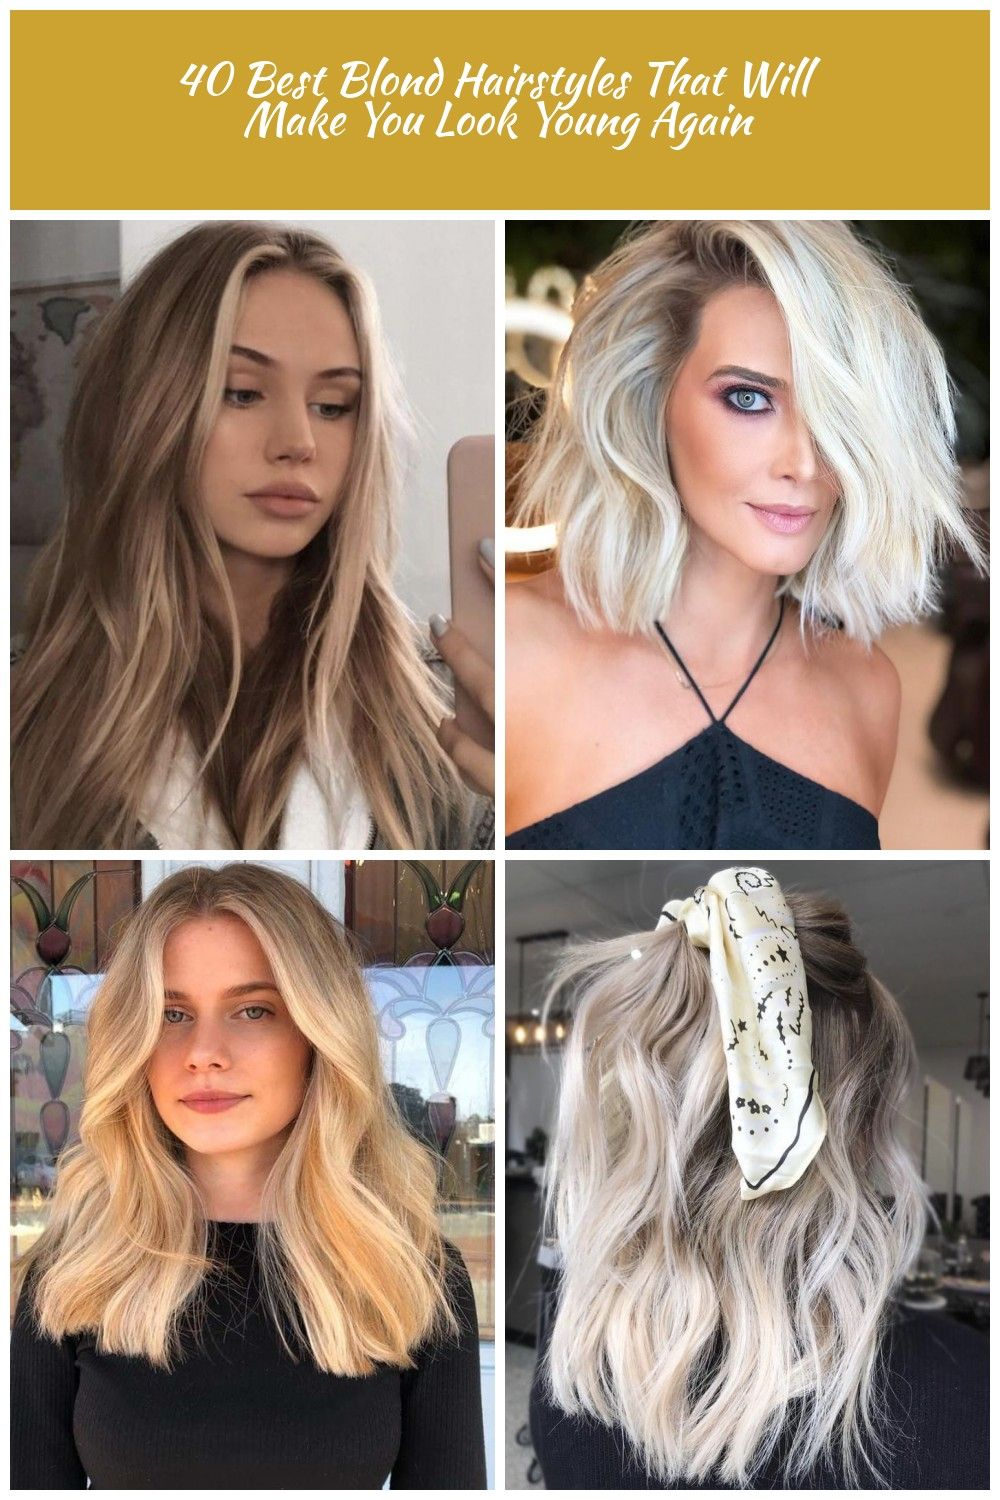 Blonde Hairstyles That Will Make You Look Young Again Platinum Blonde Hair Color Ash Blonde Hair Hair Styles